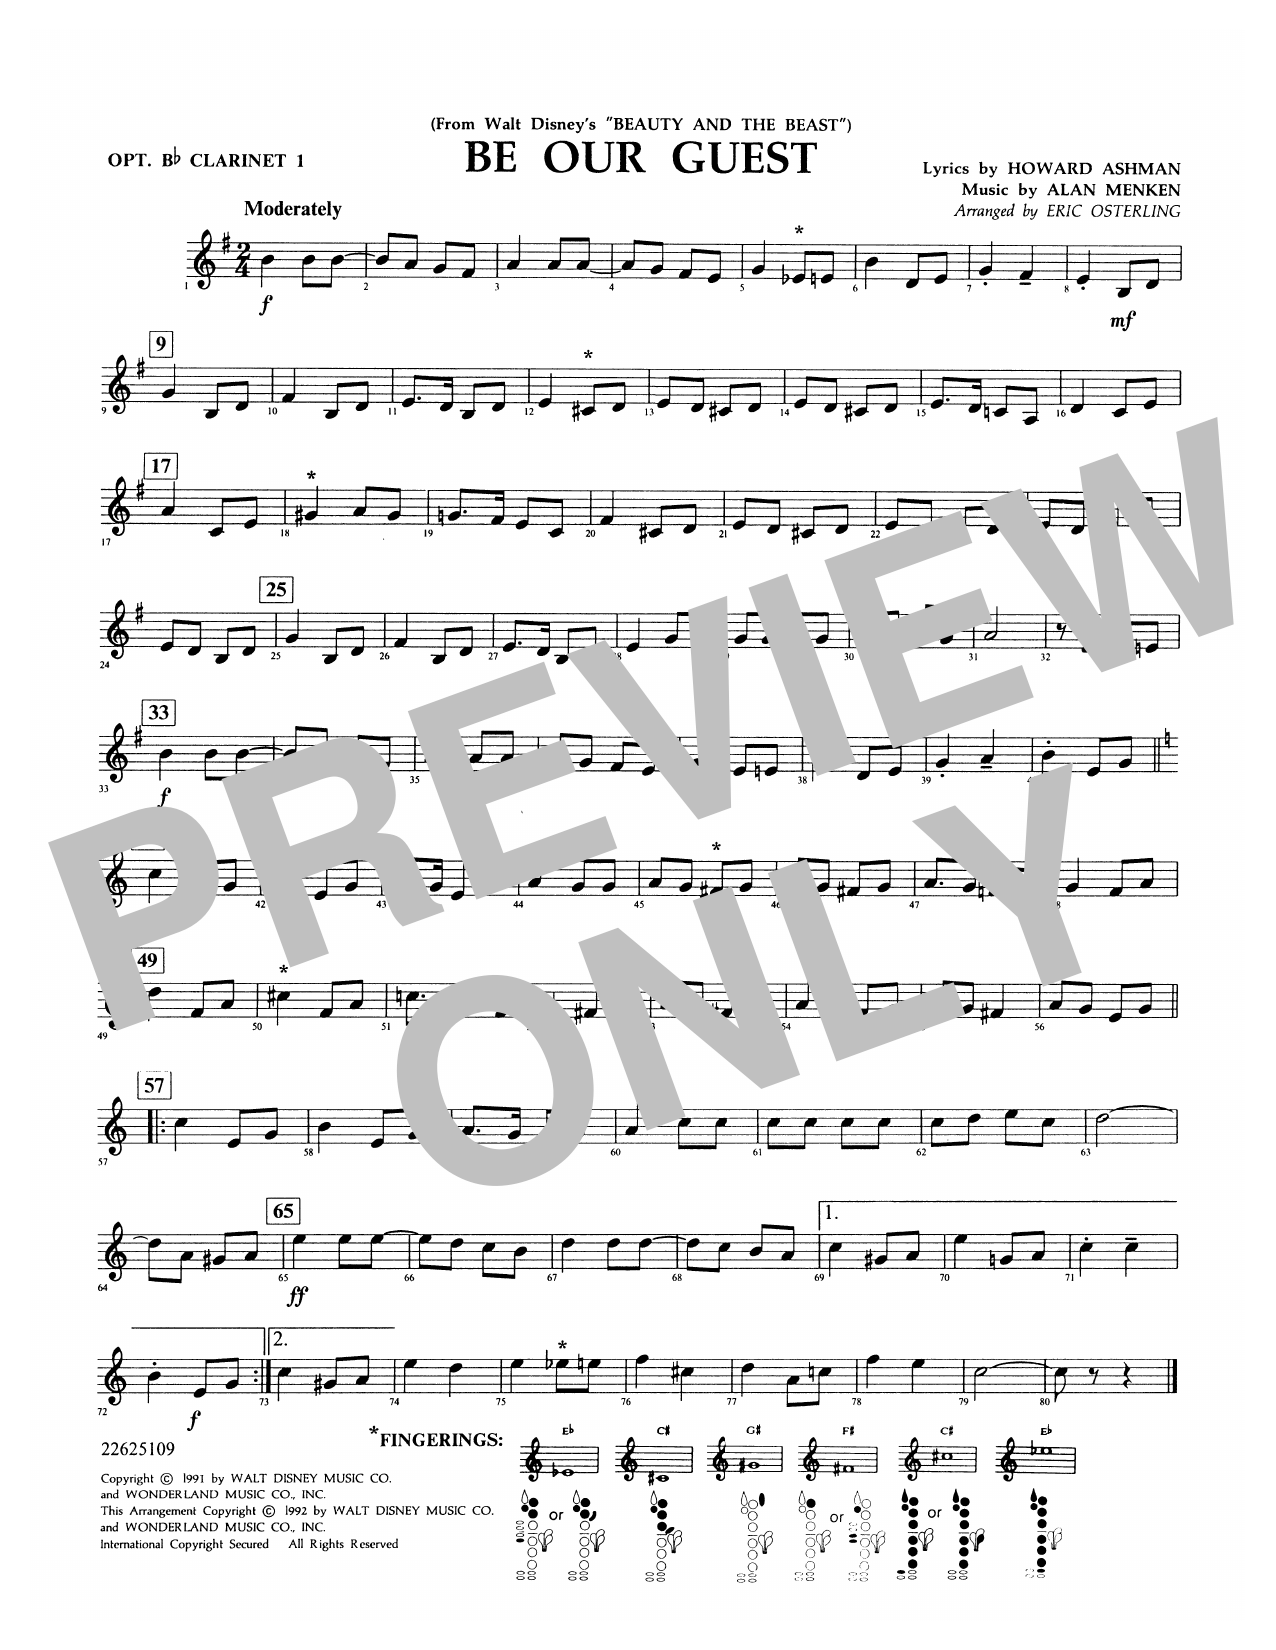 Be Our Guest (from Beauty And The Beast) (arr. Eric Osterling) - Opt. Bb Clarinet 1 Sheet Music